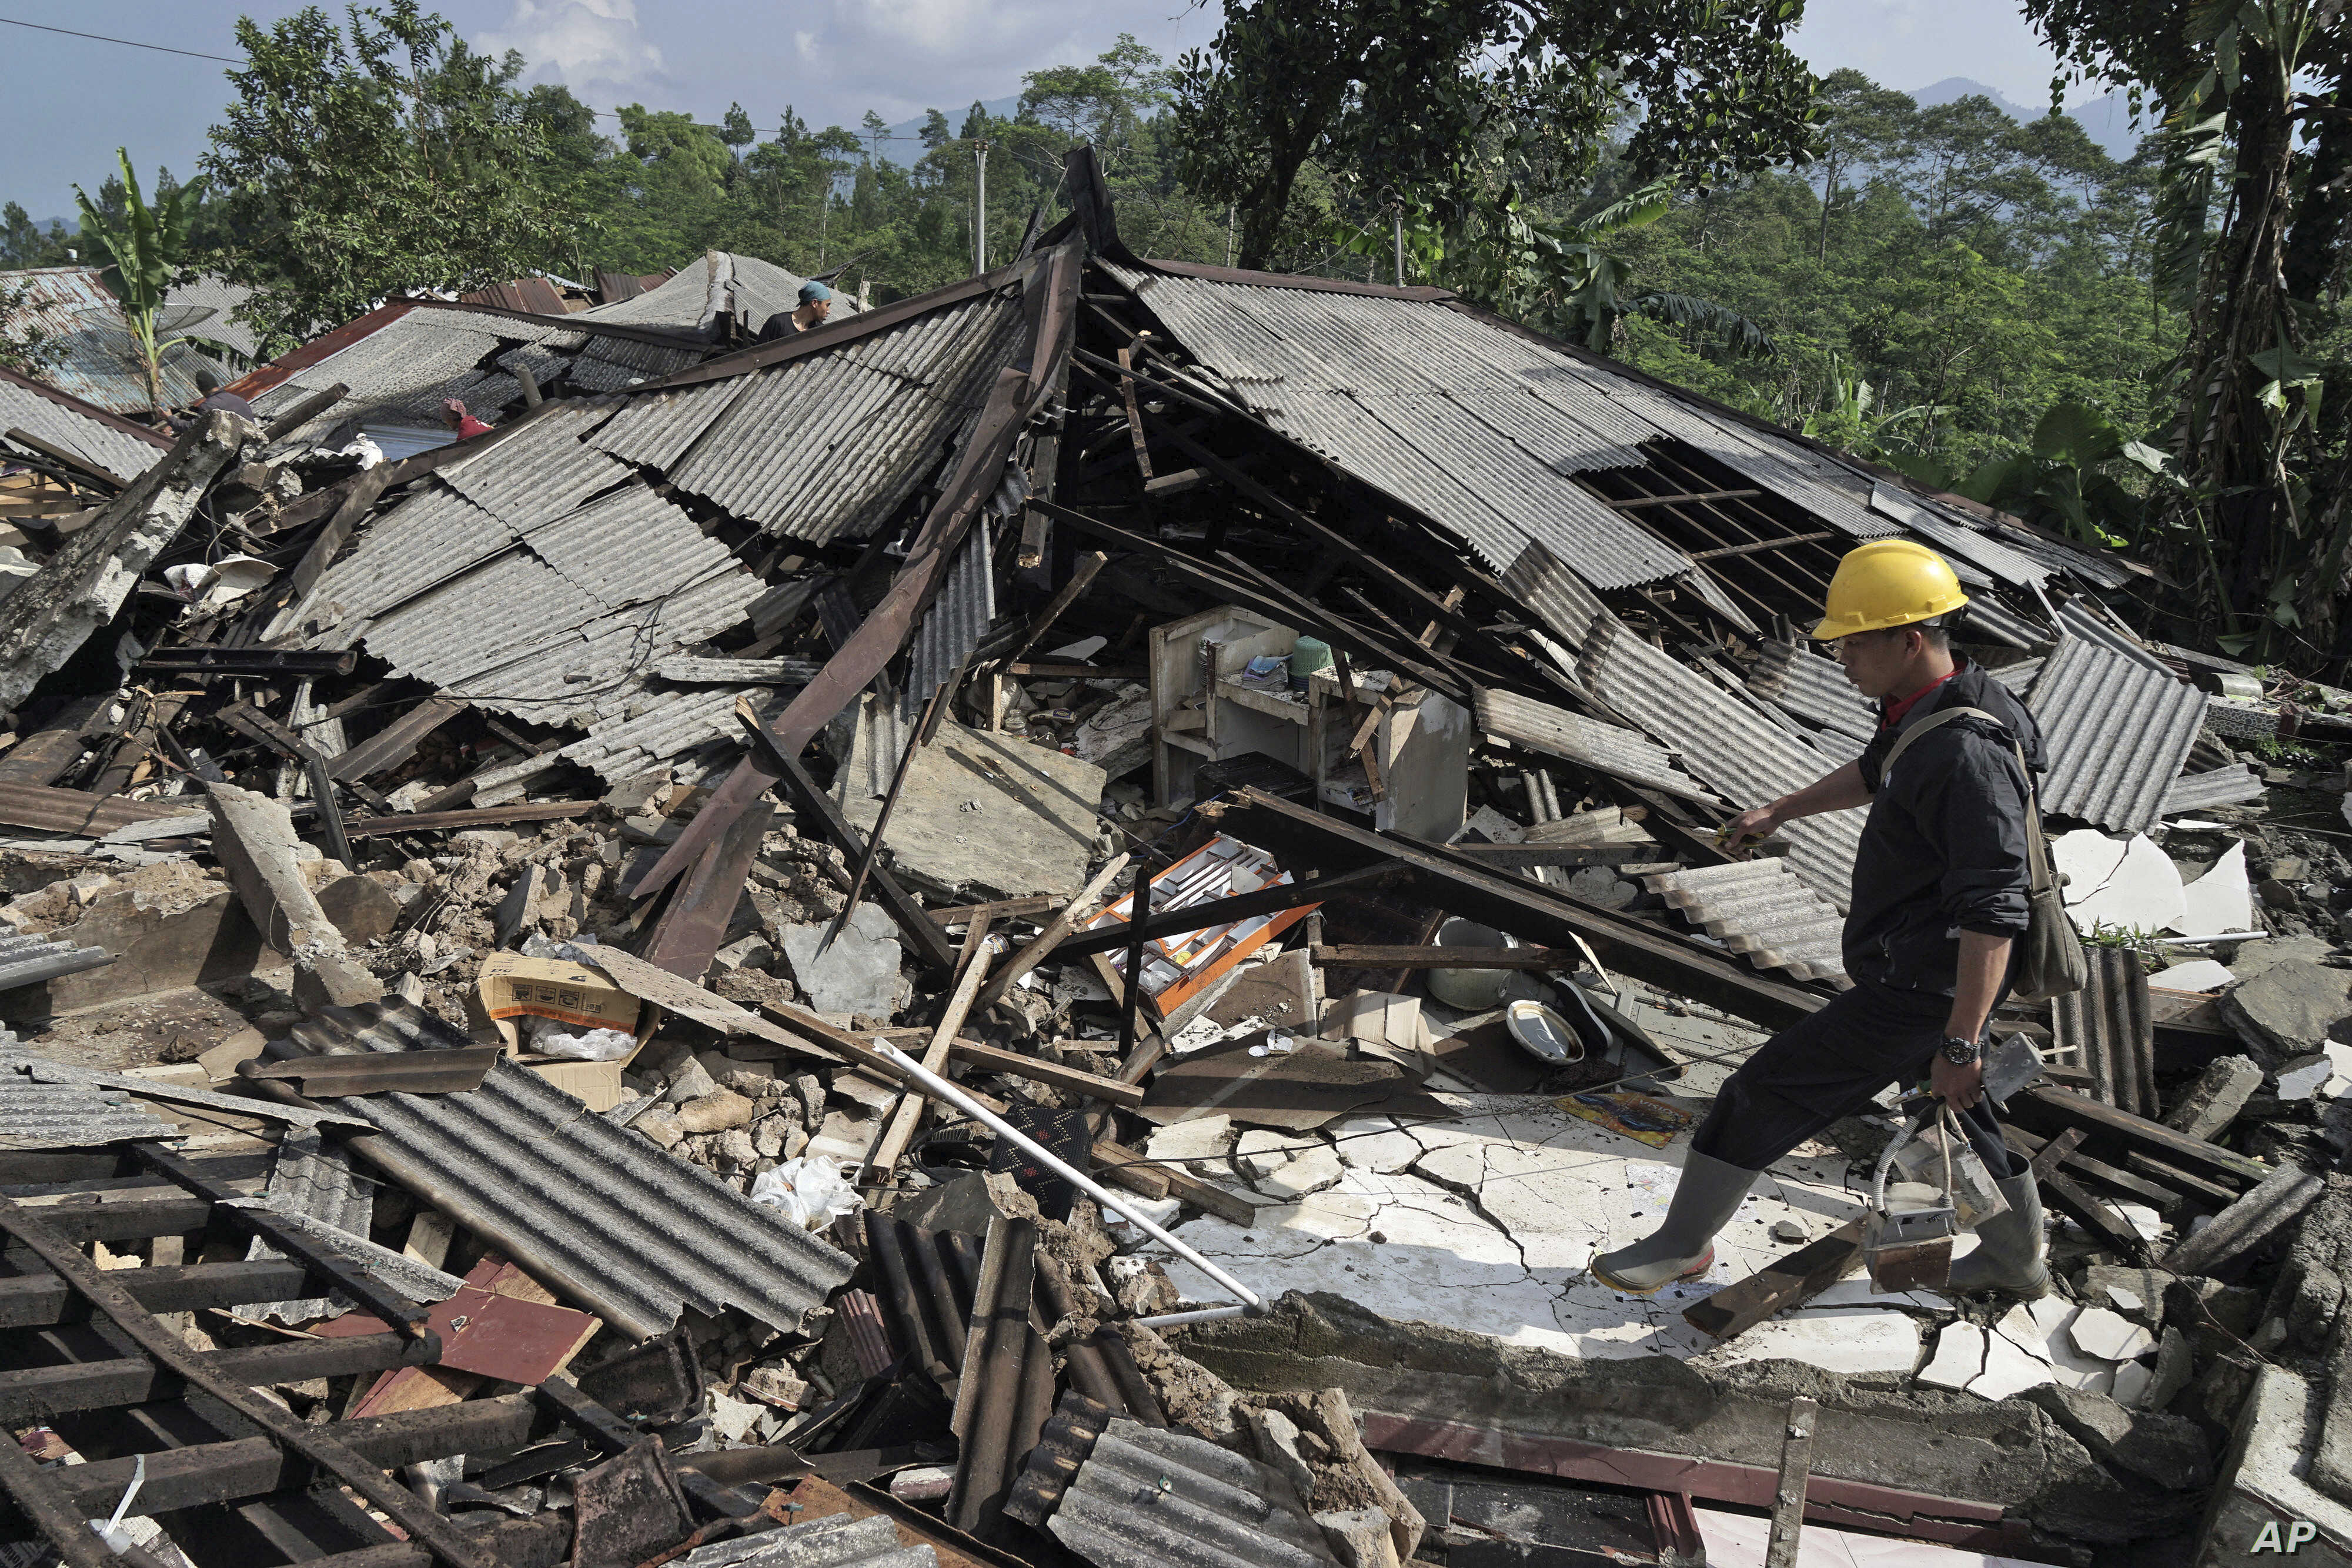 A rescuer walks on the rubble of houses in an area affected by an earthquake in Kalibening, Central Java, Indonesia, April 19, 2018.